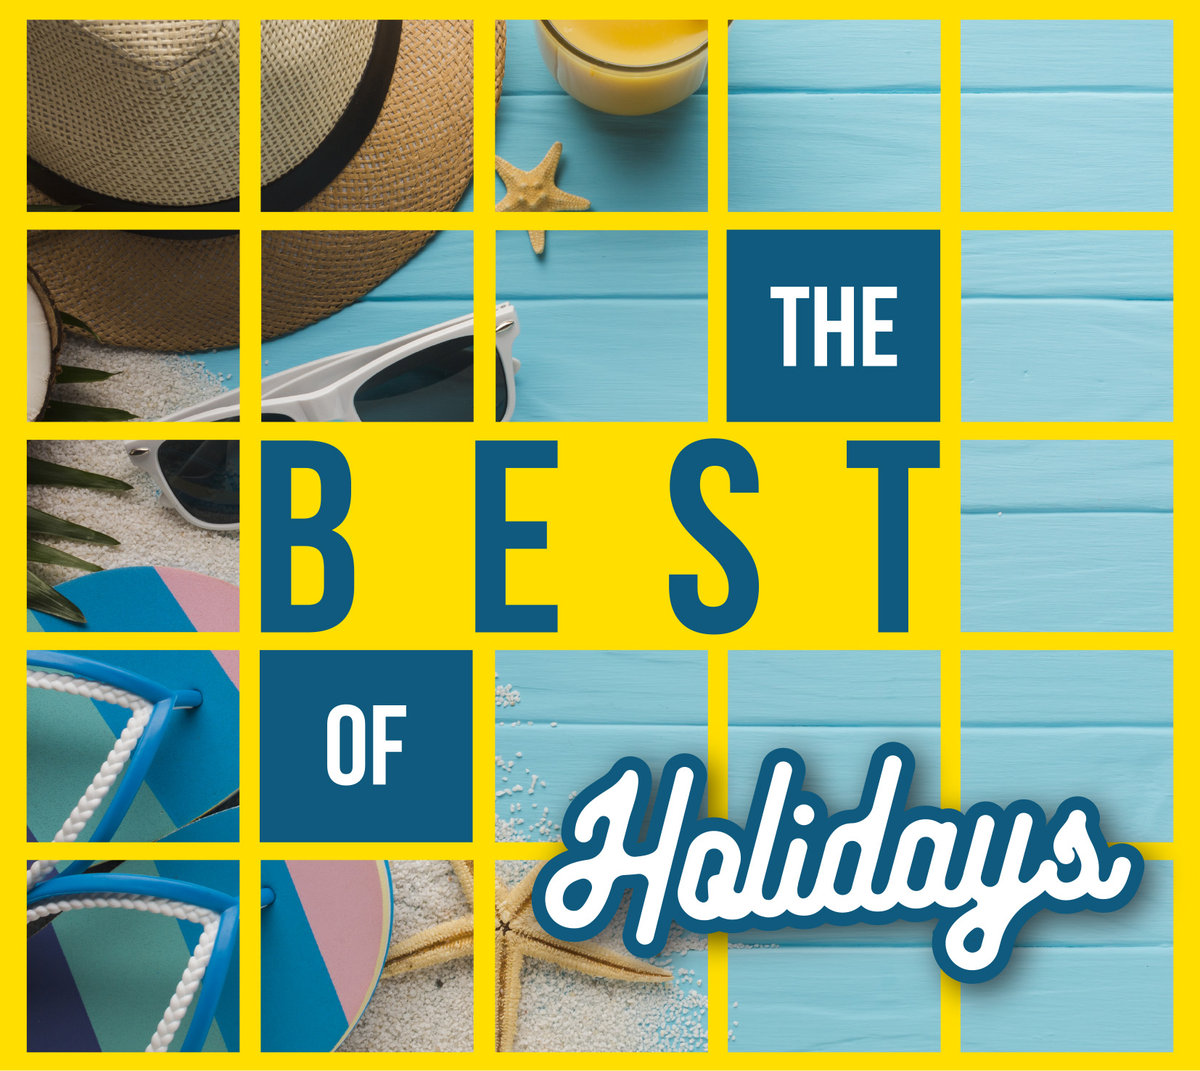 The Best Of Holidays